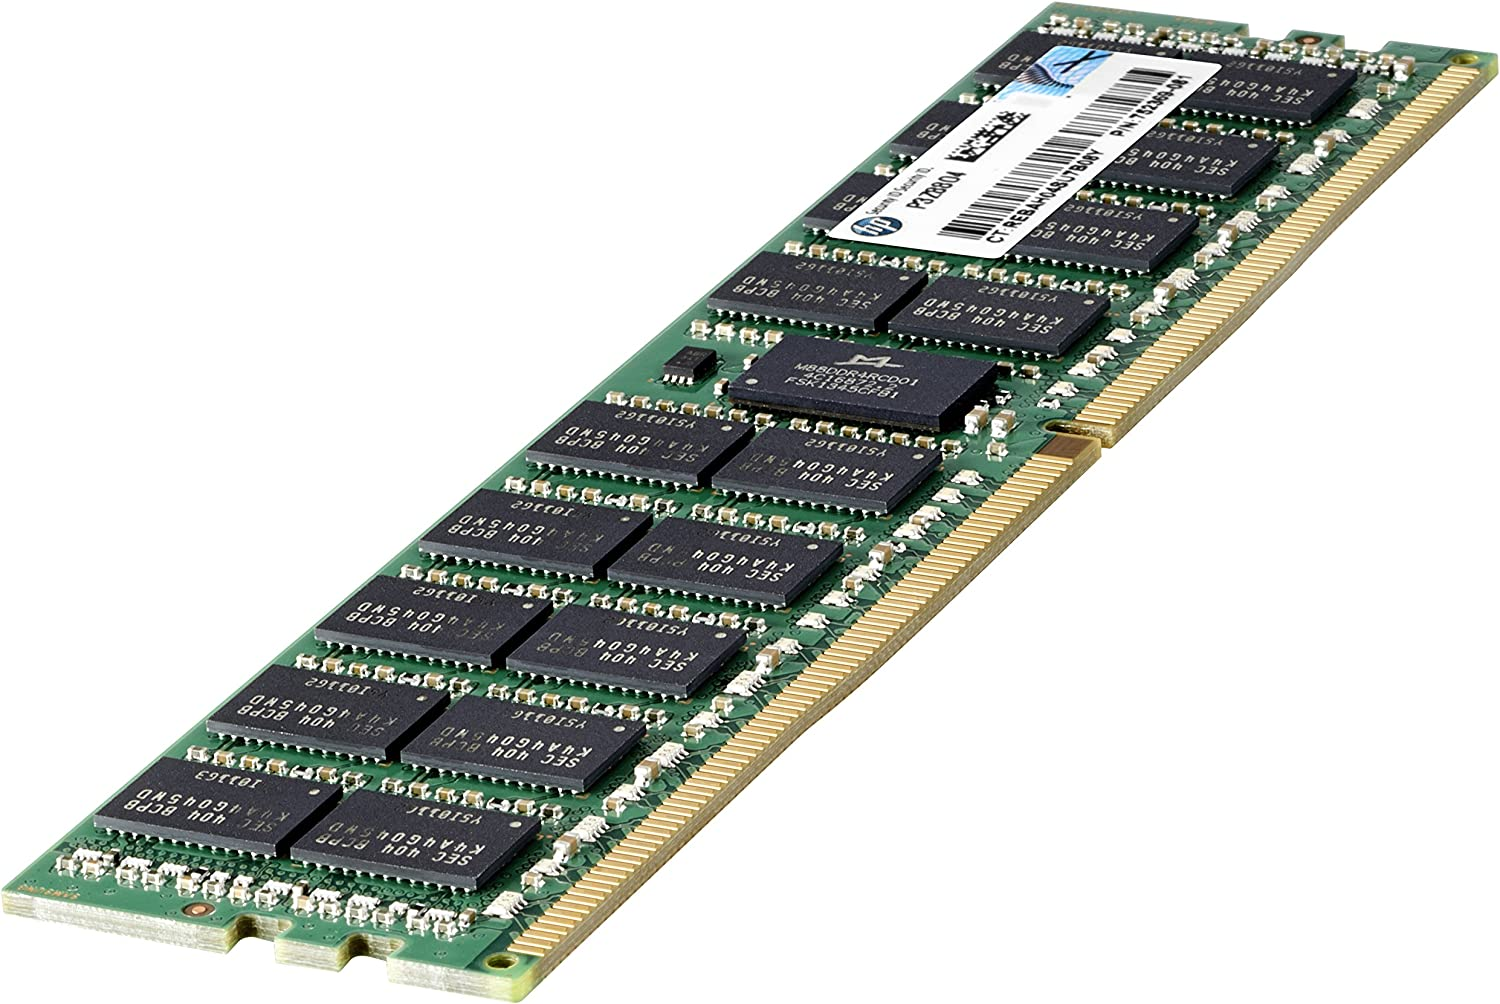 HP 726719-B21 - HP 16GB (1x16GB) Dual Rank x4 DDR4-2133 CAS-15-15-15 Registered